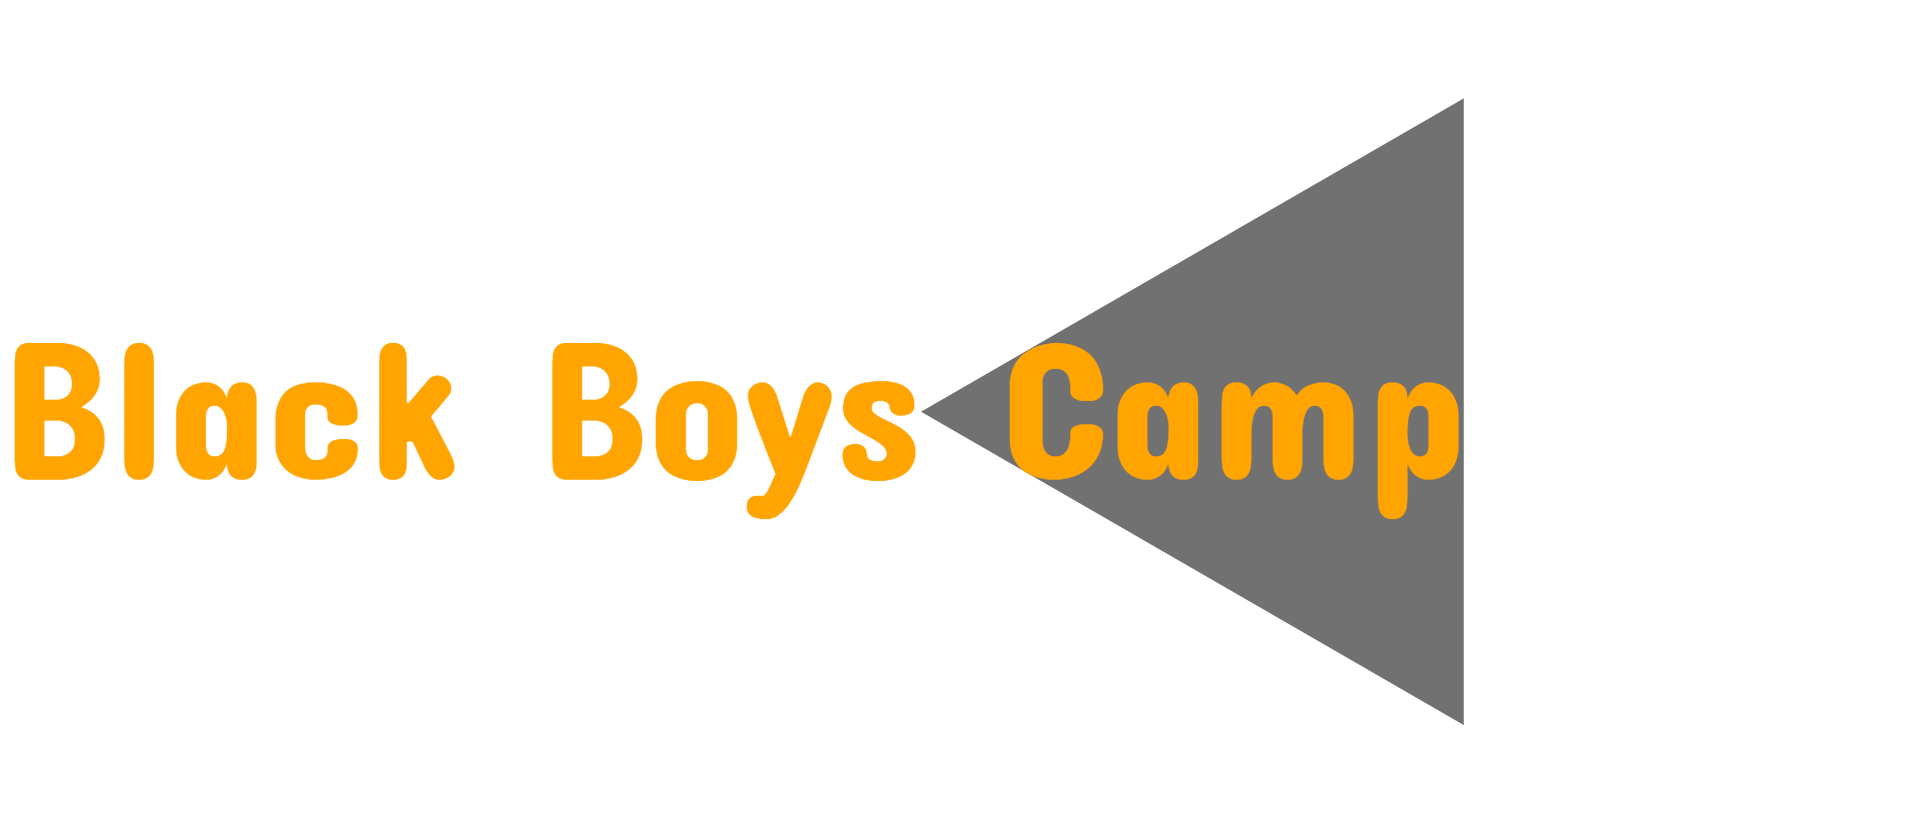 Black Boys Camp Logo